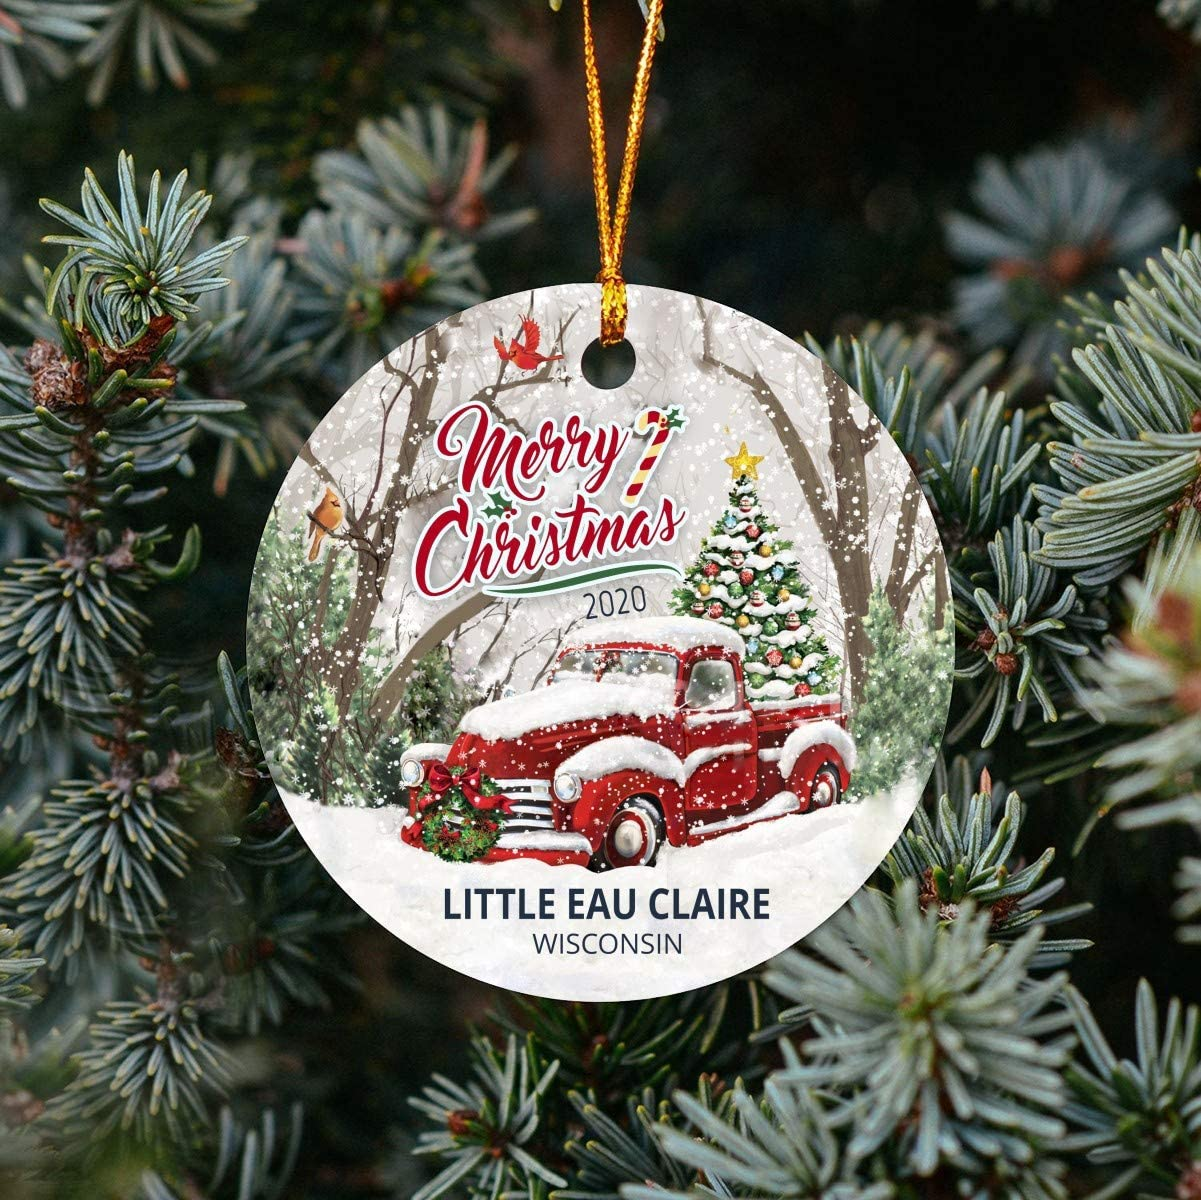 """Christmas Tree Ornaments 2020 - Ornament Customize With Name City And State Little Eau Claire Wisconsin WI - Red Truck Xmas Ornaments 3"""" Plastic Gift For Family, Friend And Housewarming"""